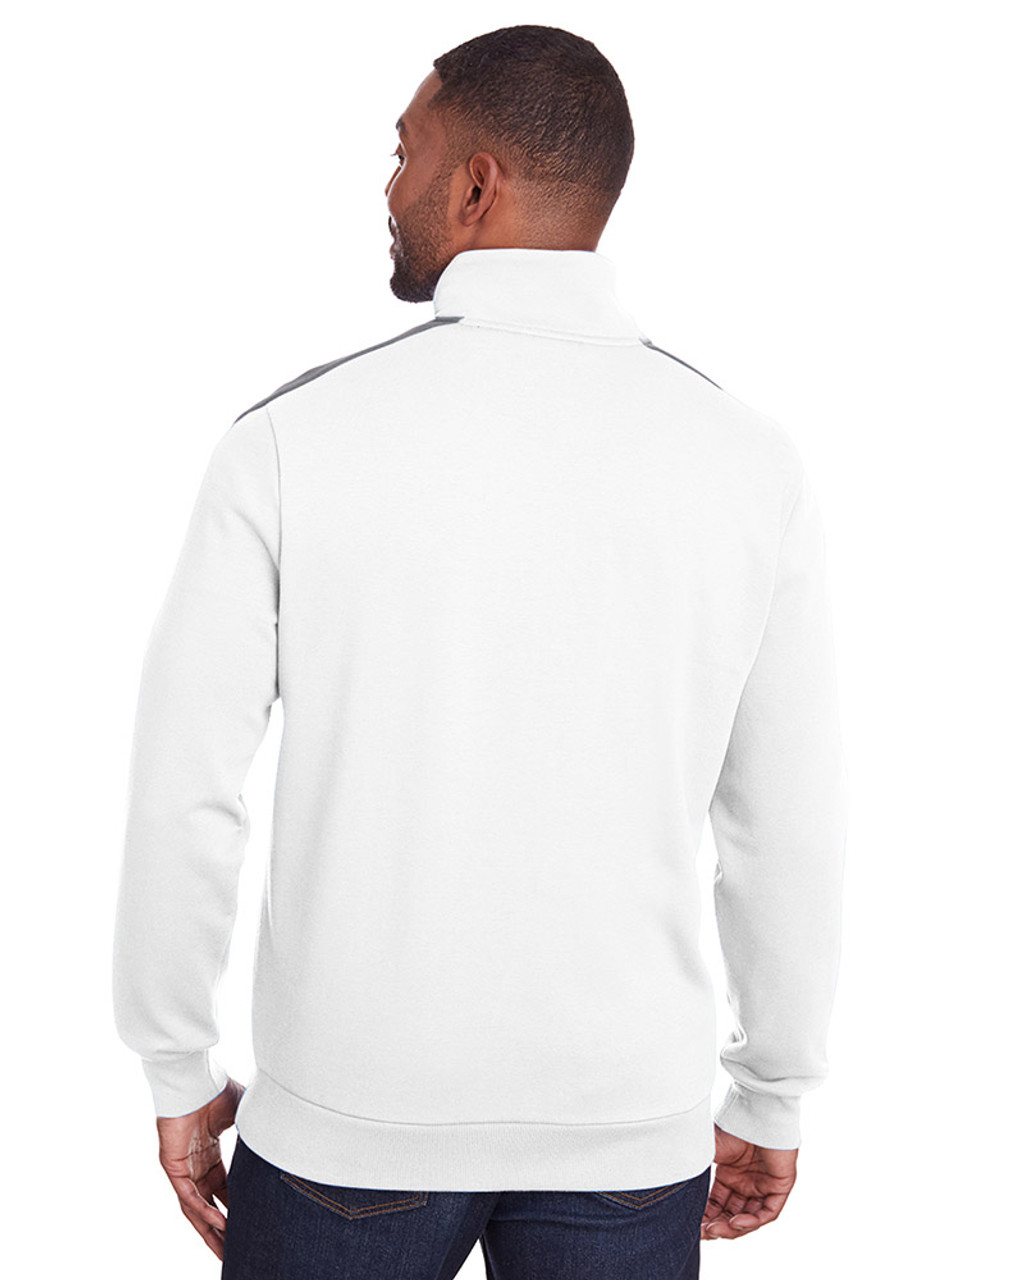 Bright White/Quiet Shade - back, 597021 Puma Sport Adult P48 Fleece Track Jacket | Blankclothing.ca